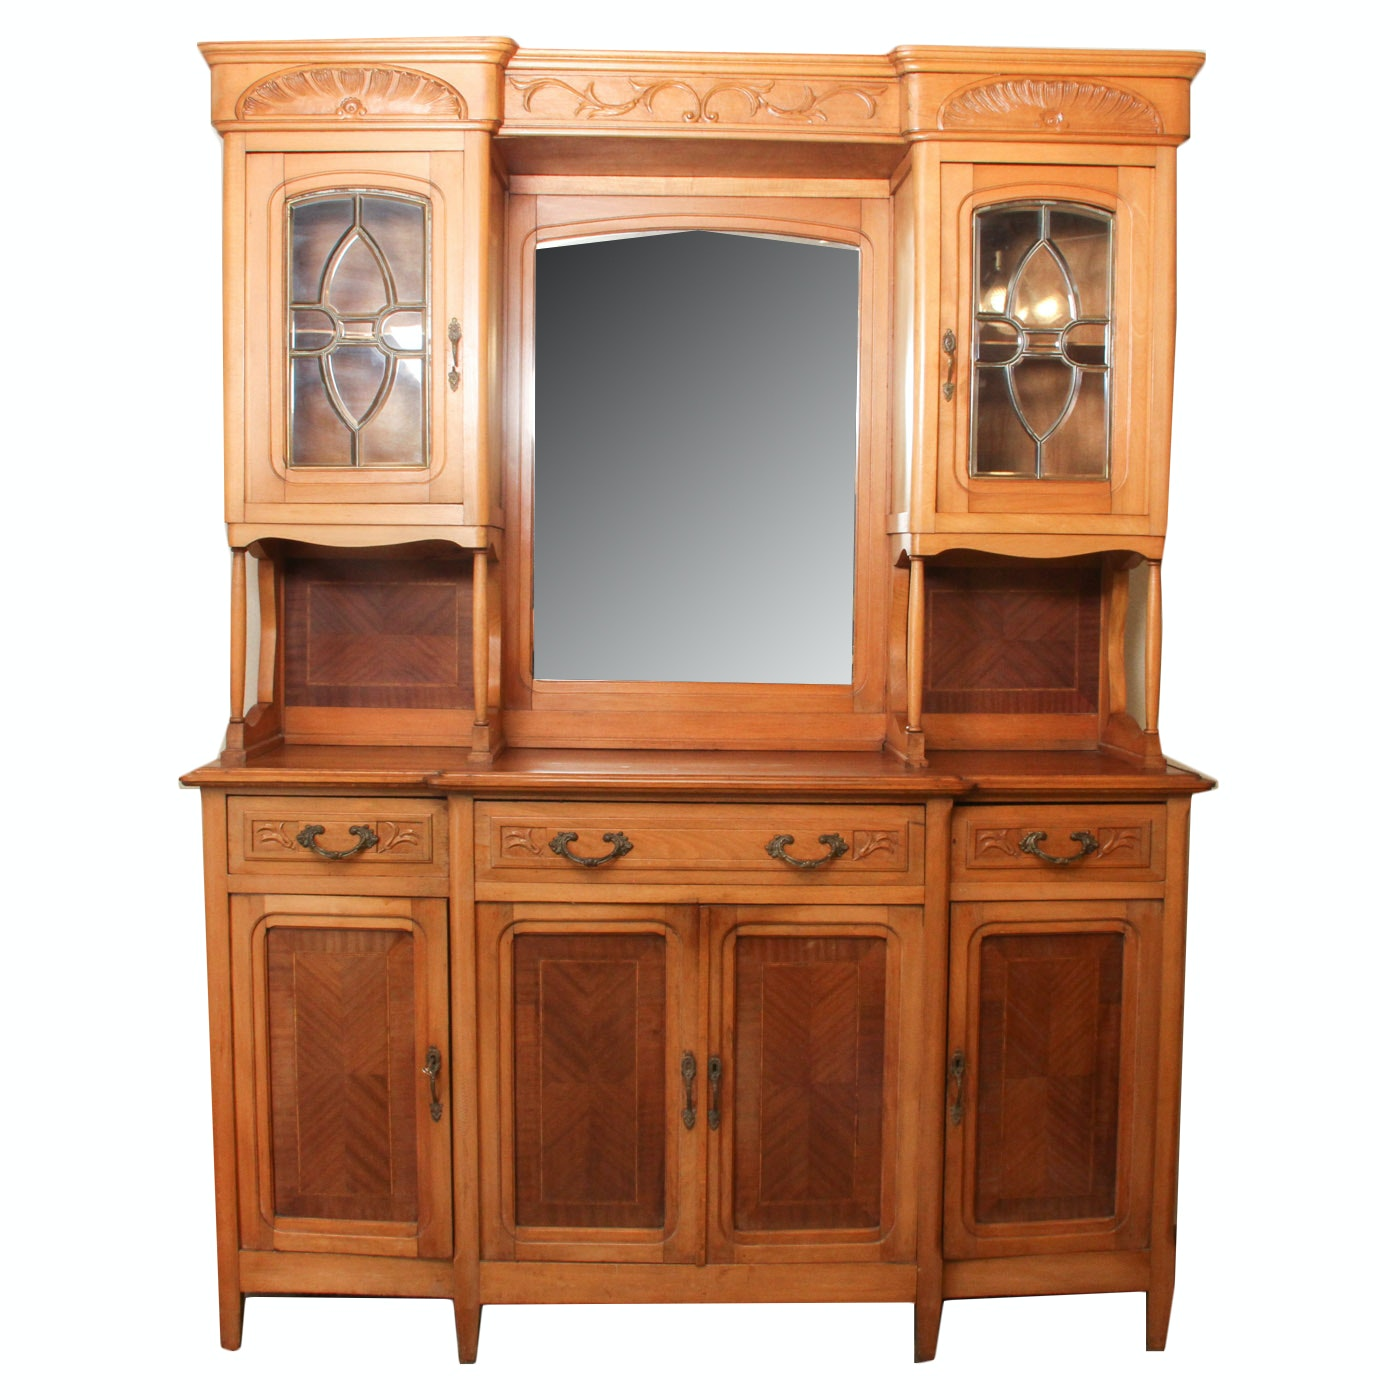 Antique French Beechwood Buffet Cabinet